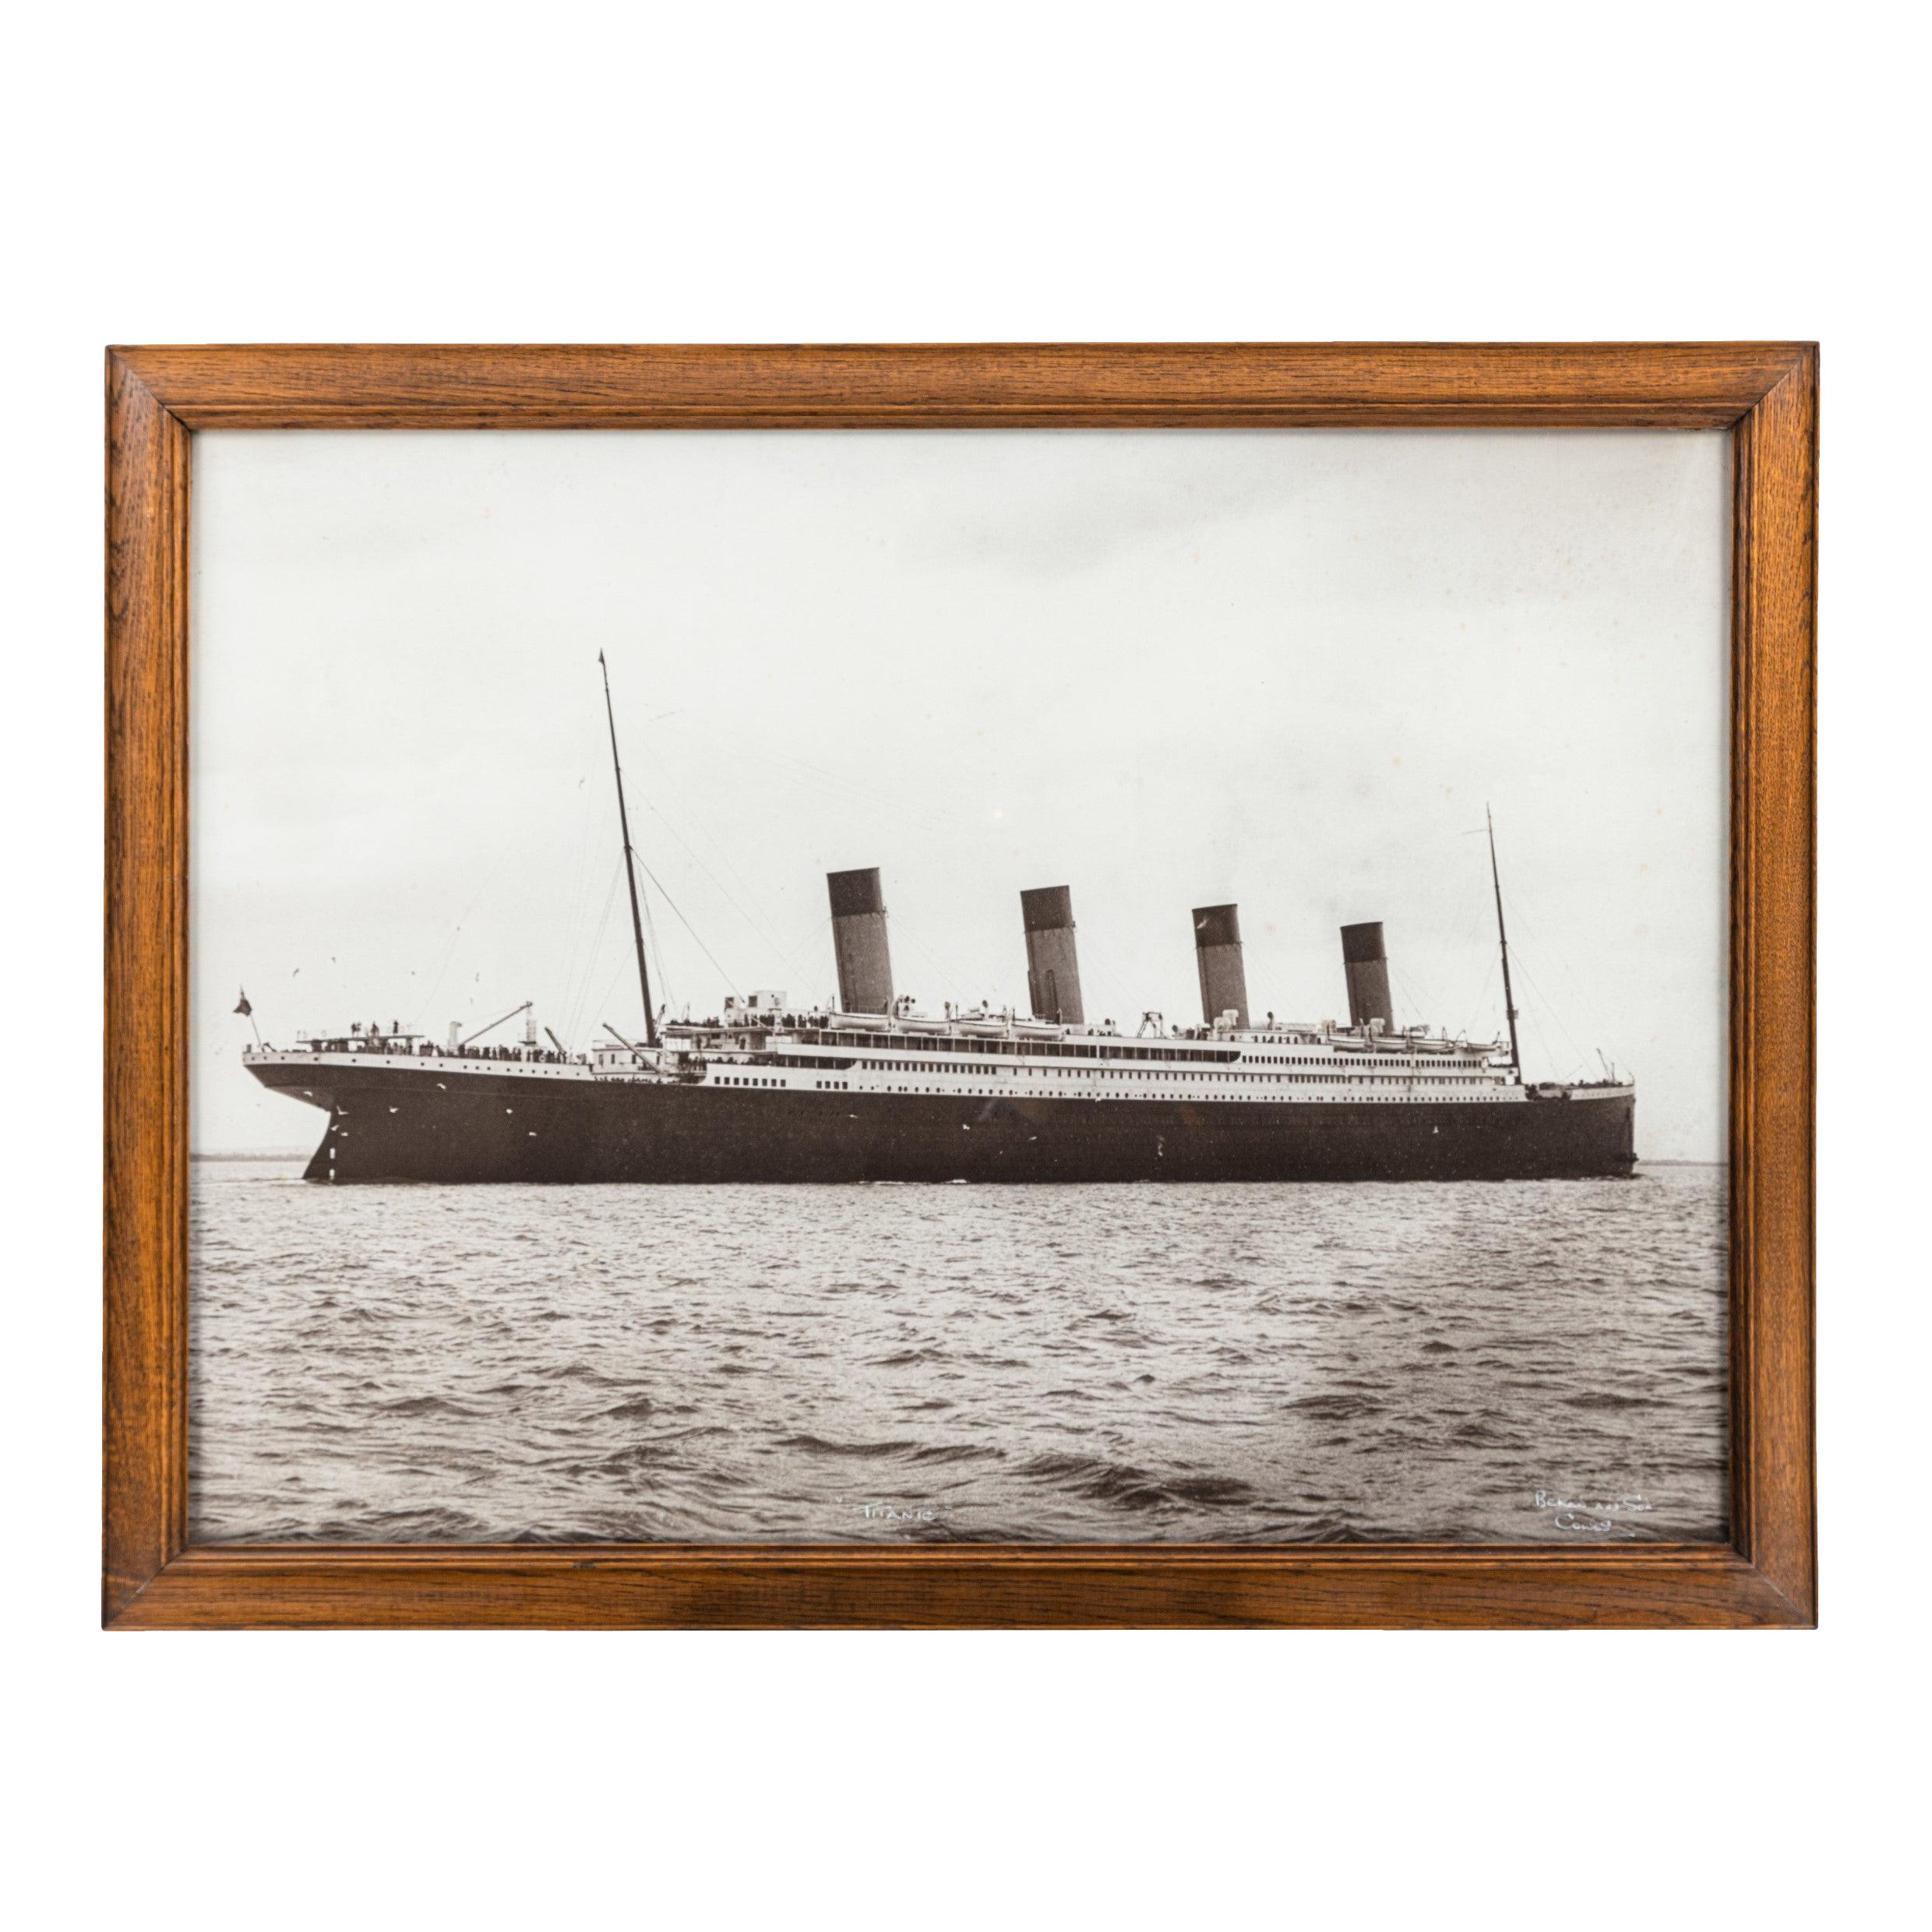 Original Photograph of R.M.S. Titanic by Beken of Cowes